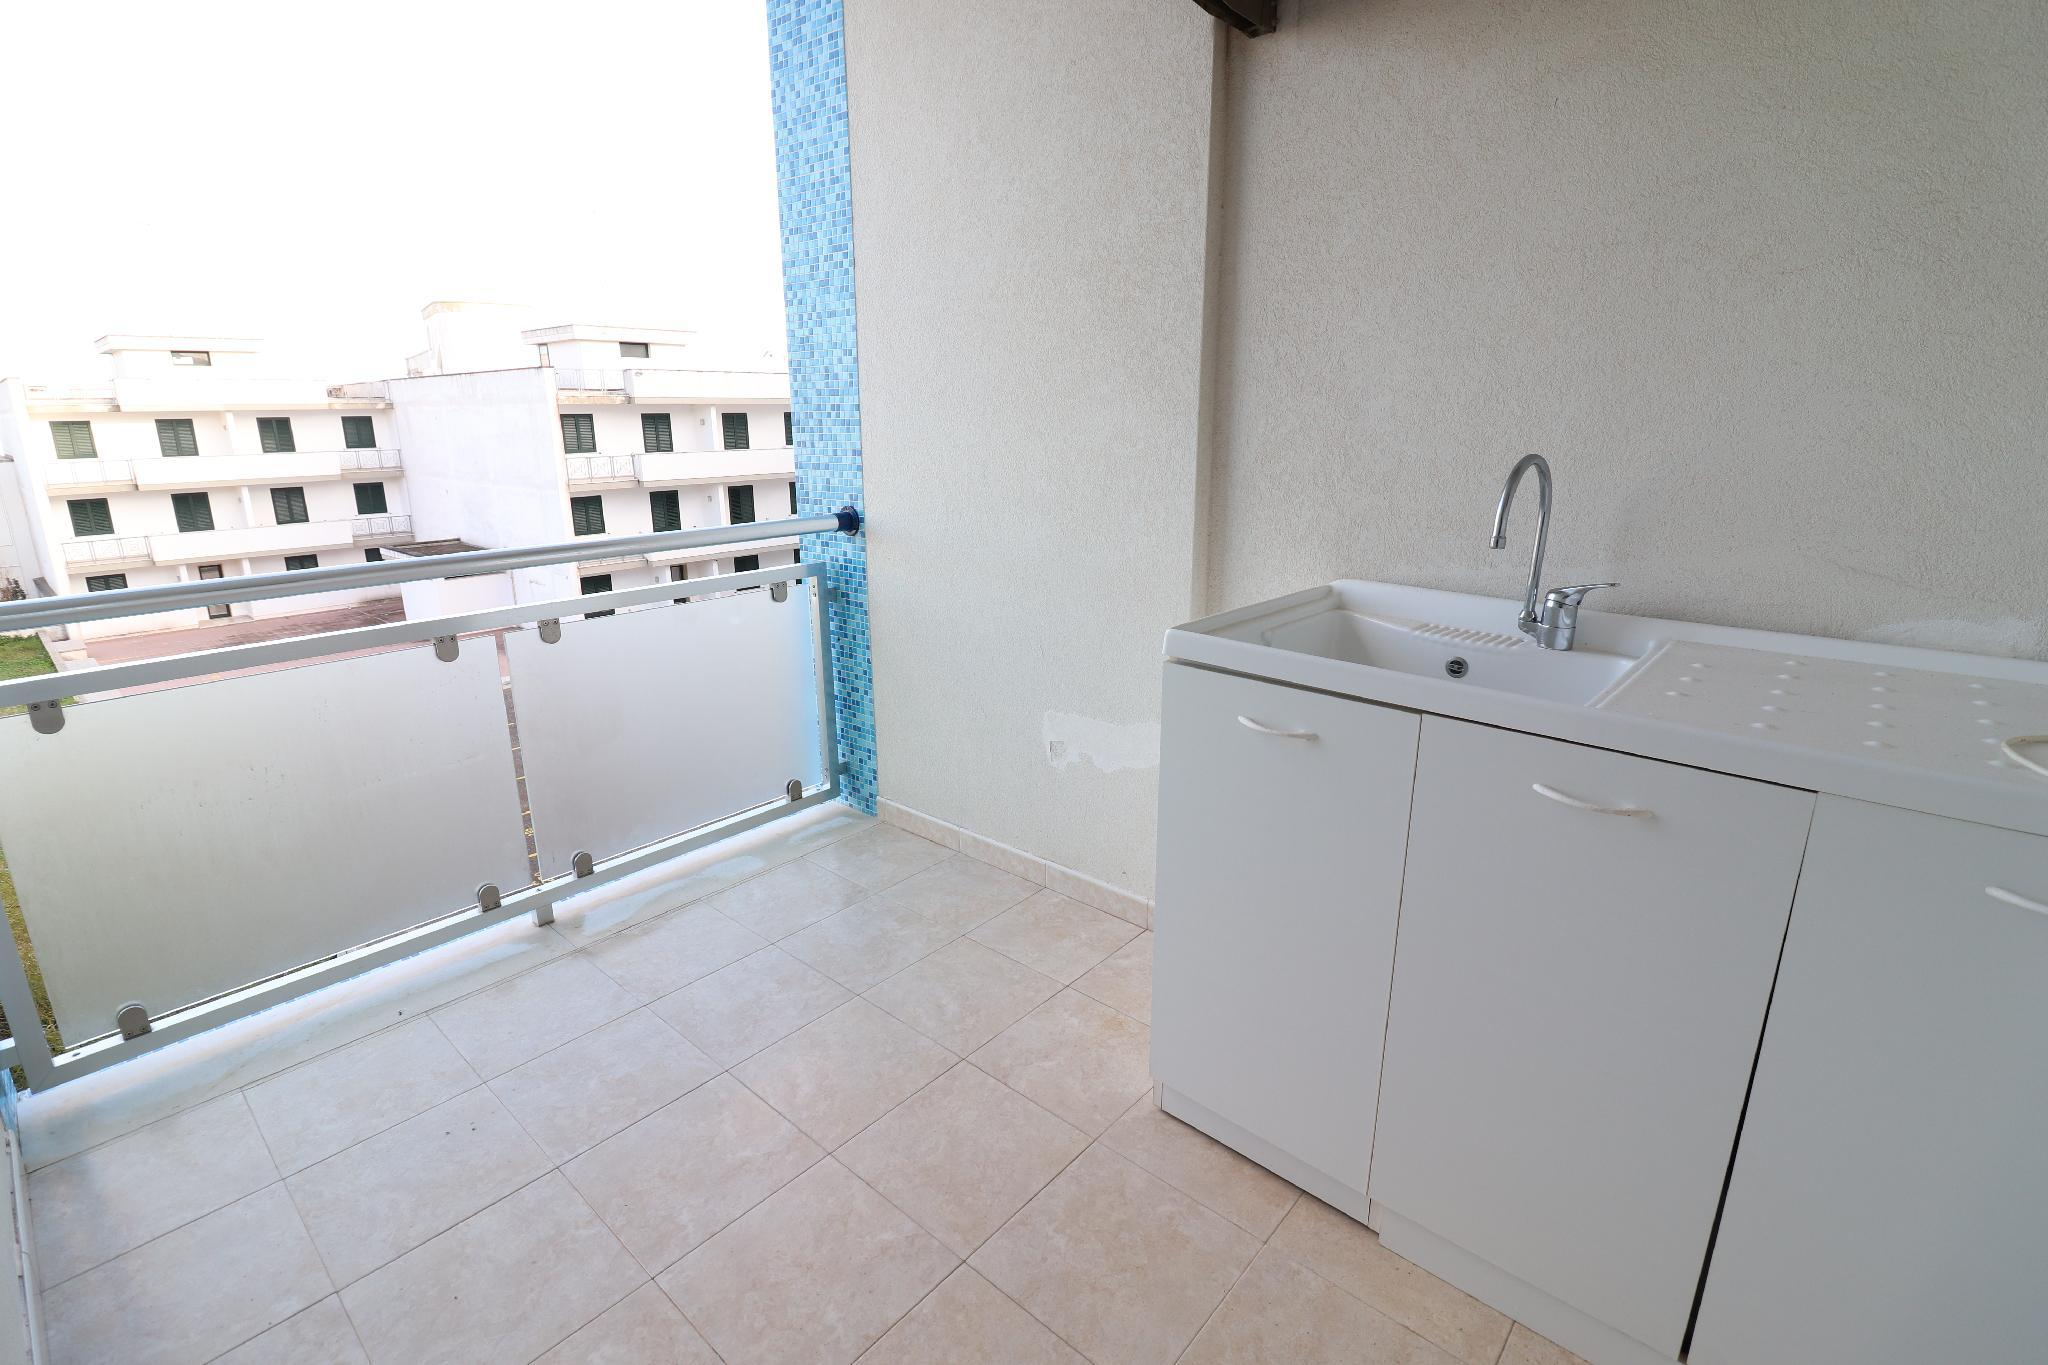 Holiday home angel in Otranto, apartment with 4 beds, with sea view